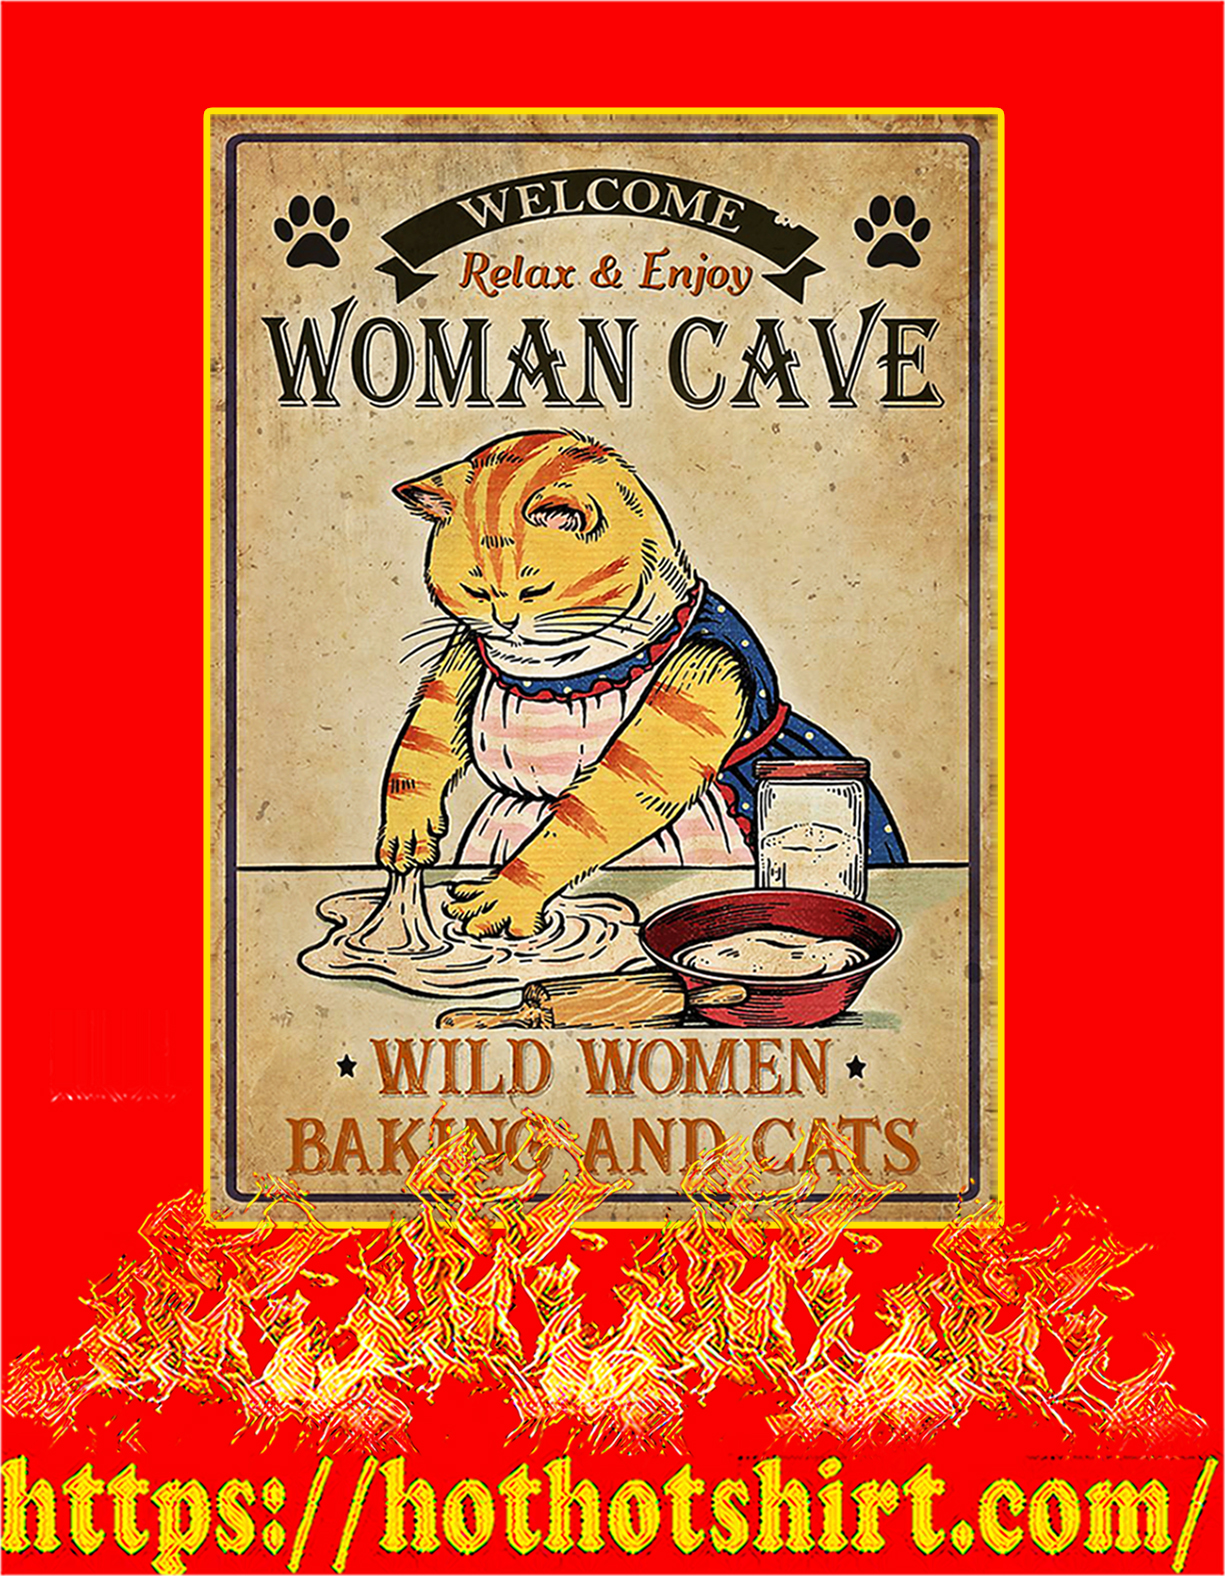 Welcome relax and enjoy woman cave wild women baking and cats poster - A4